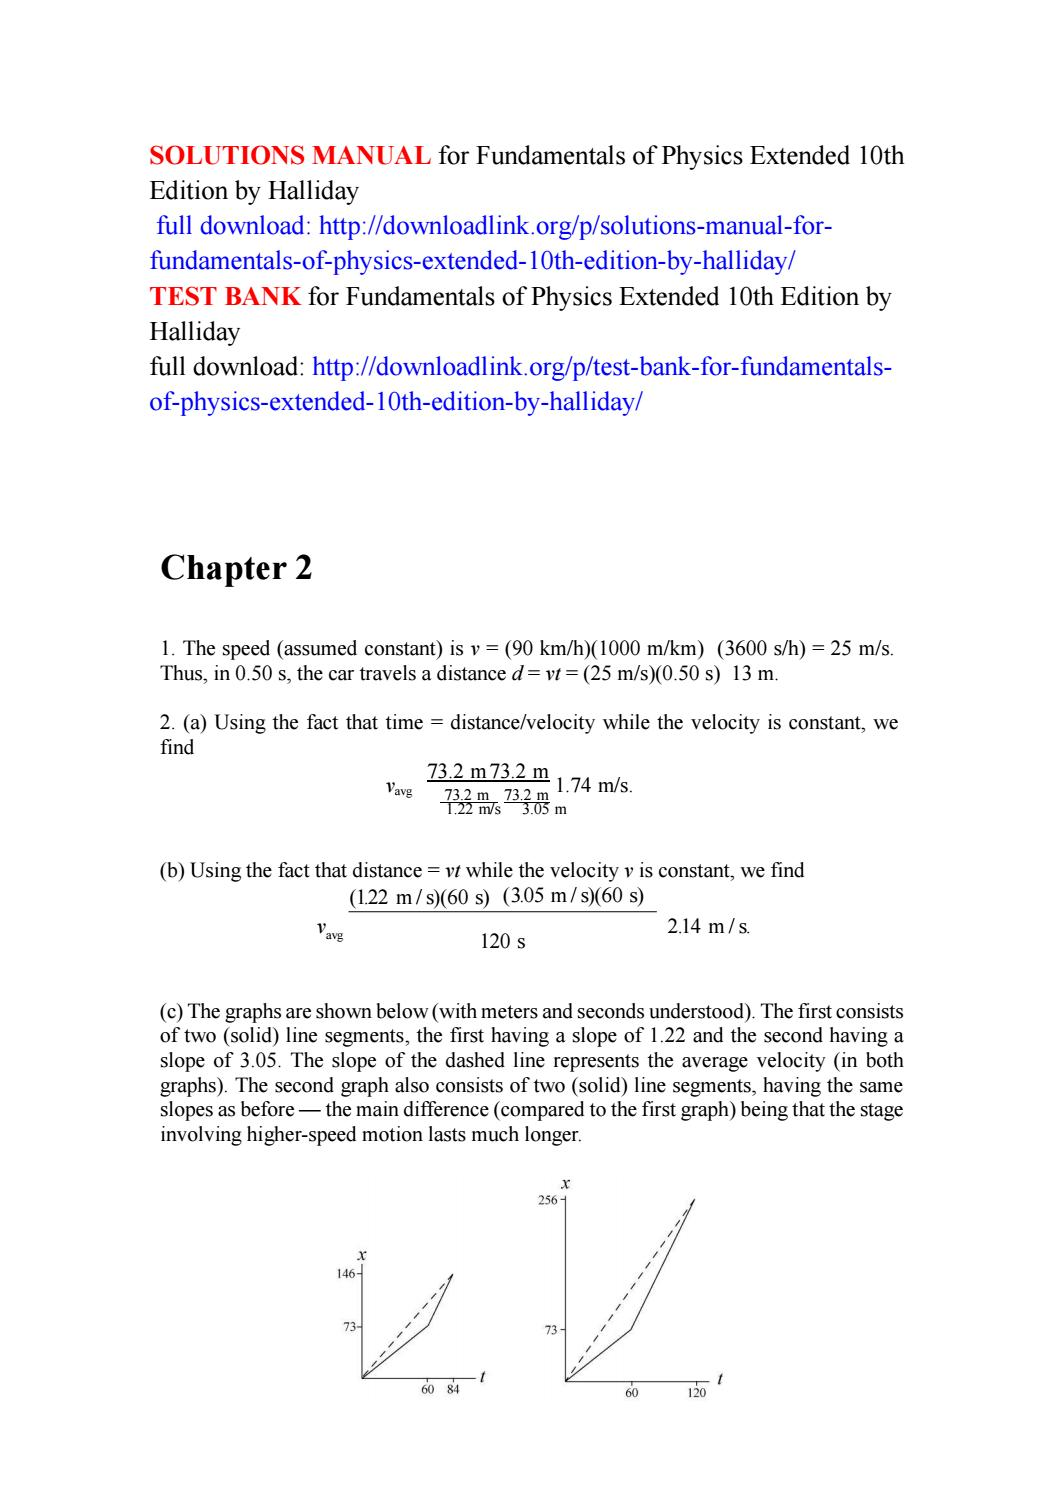 Solutions manual for fundamentals of physics extended 10th edition by  halliday by Cruz222 - issuu